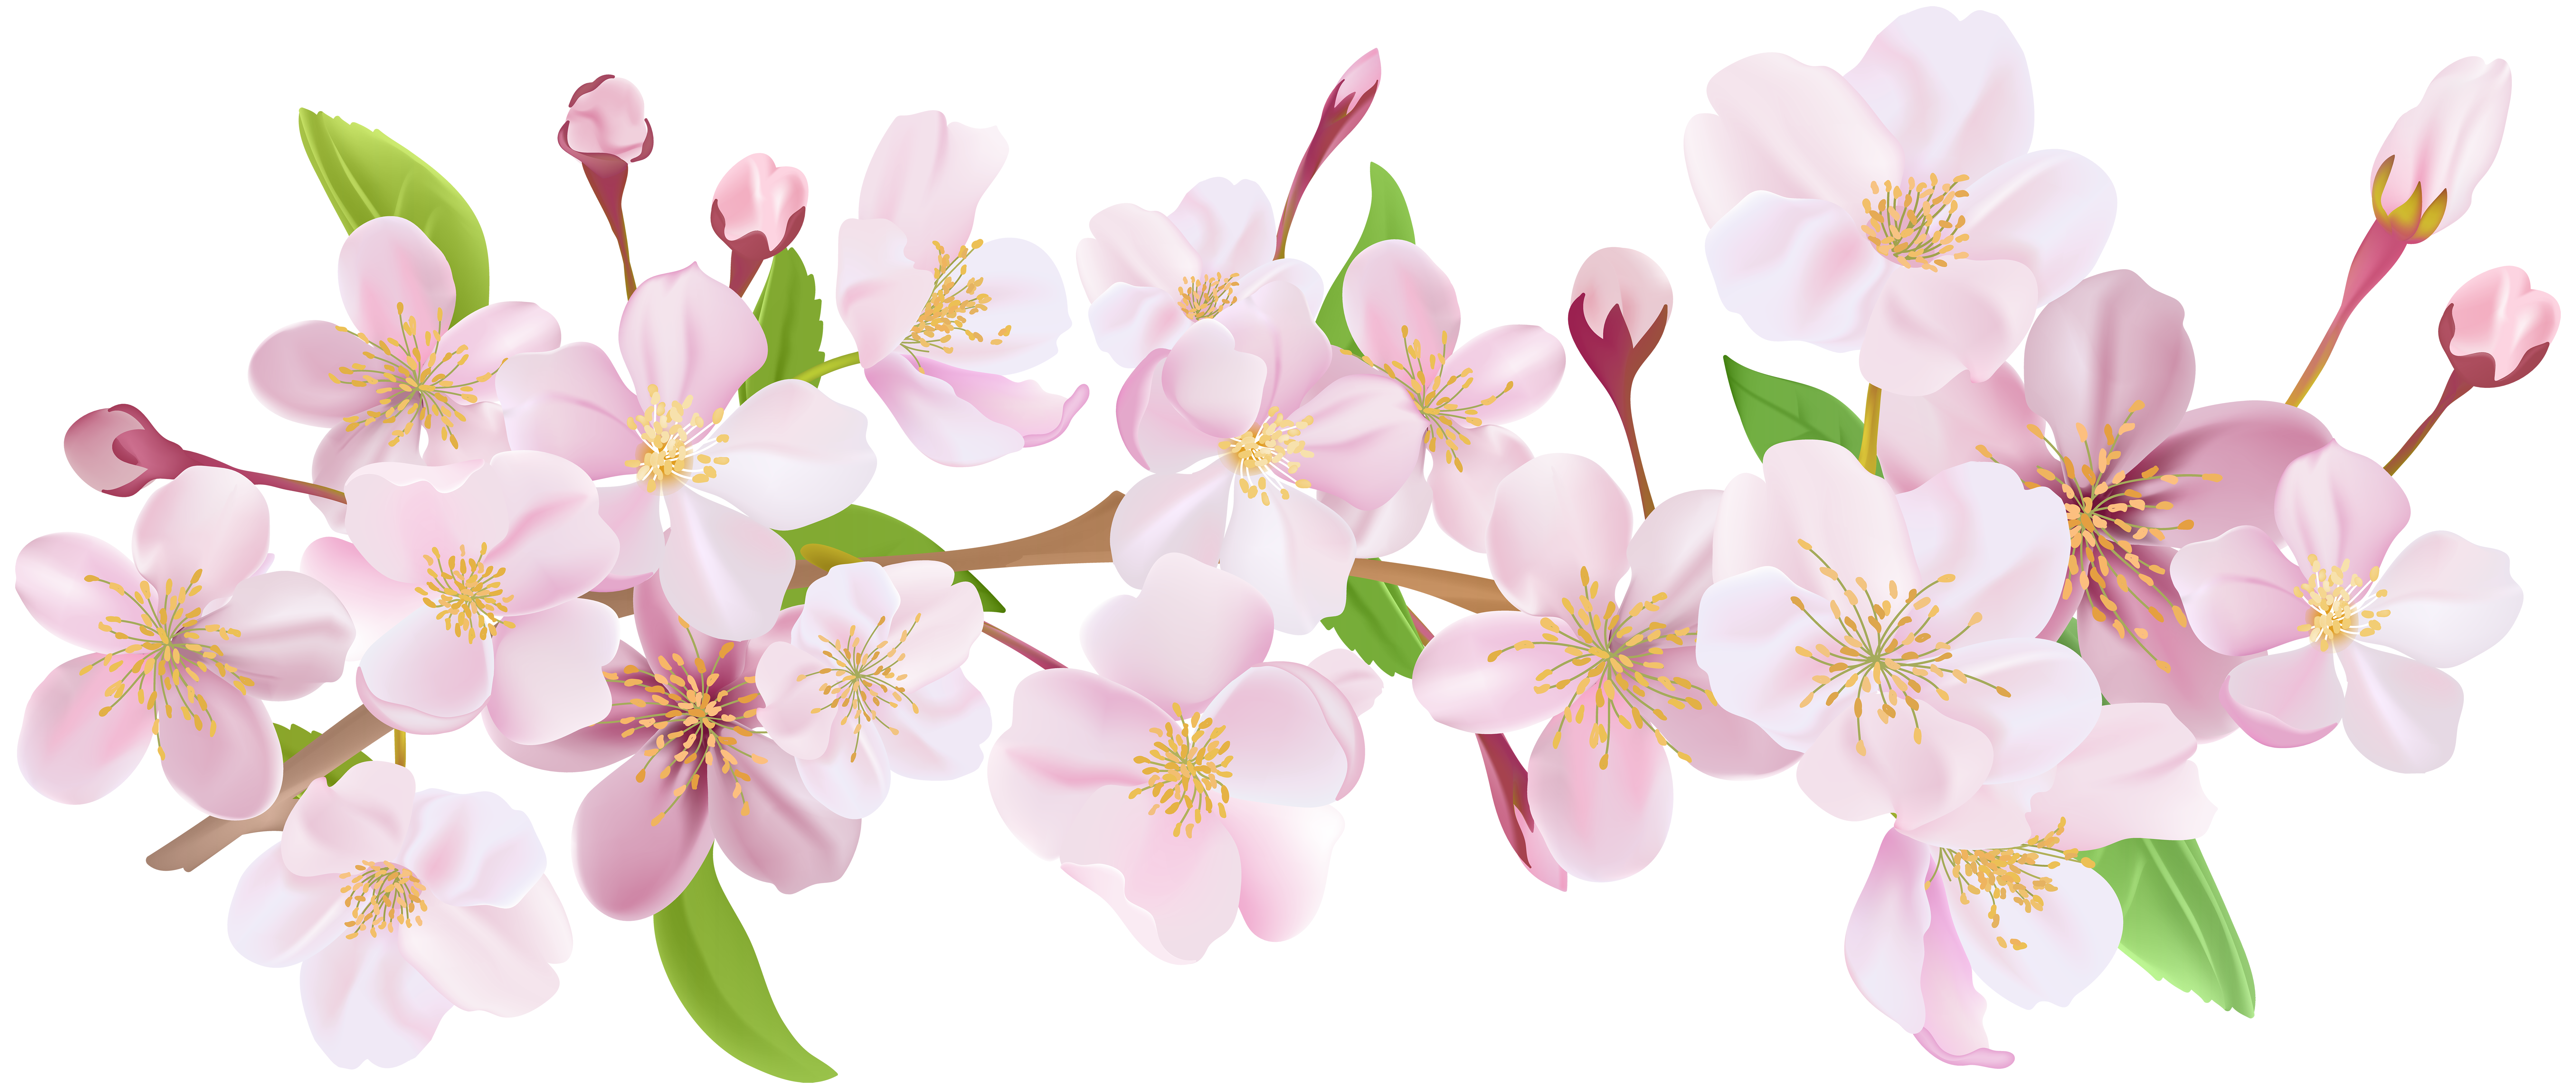 Cherry Blossom Spring Branch Png Clip Art Clip Art Spring Branch Cherry Blossom